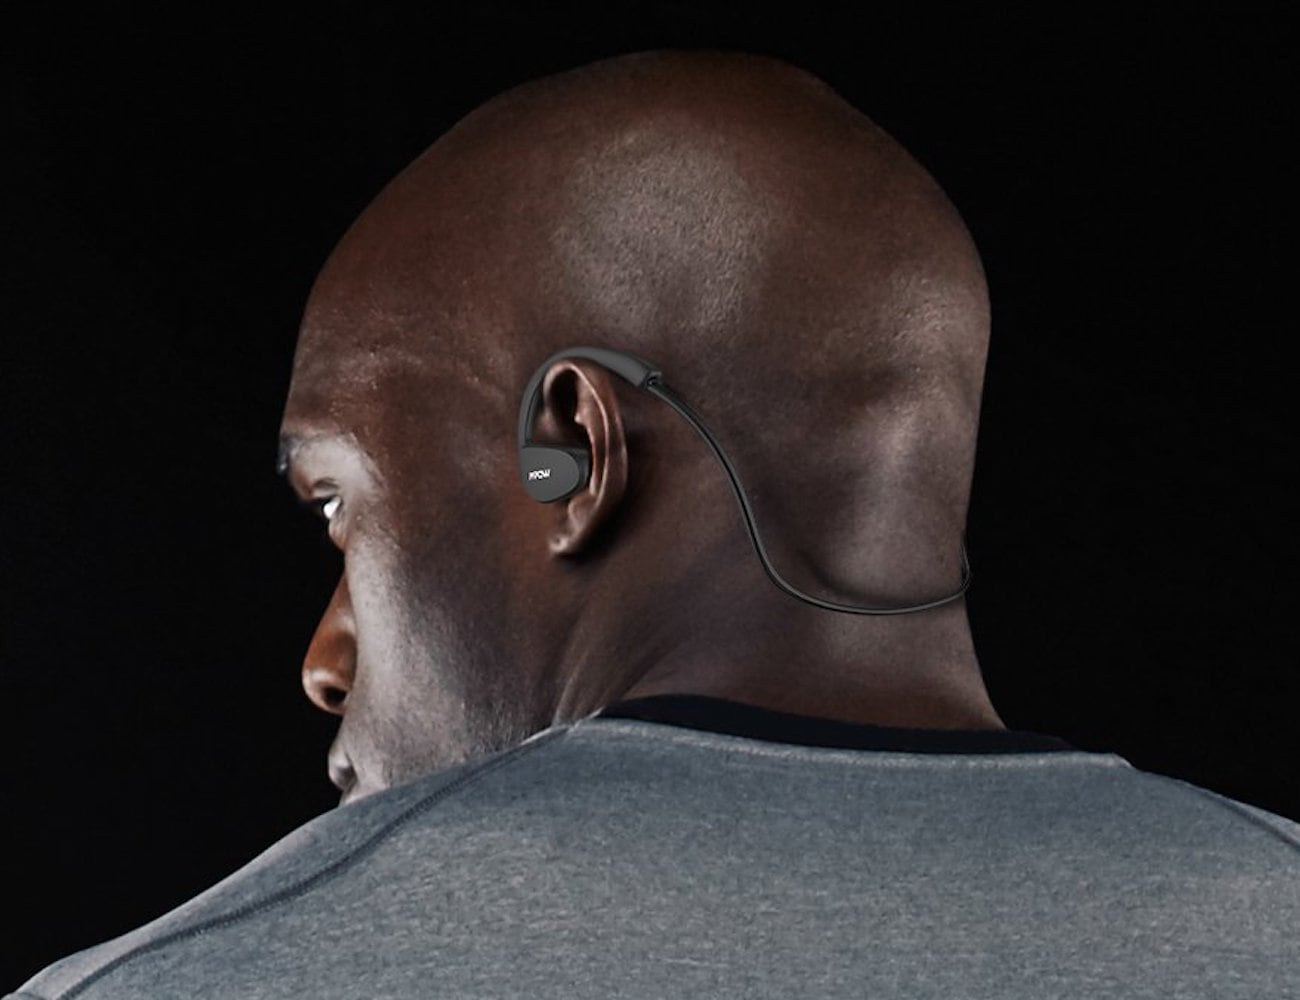 Mpow Cheetah Wireless Sport Headset lets you run with freedom